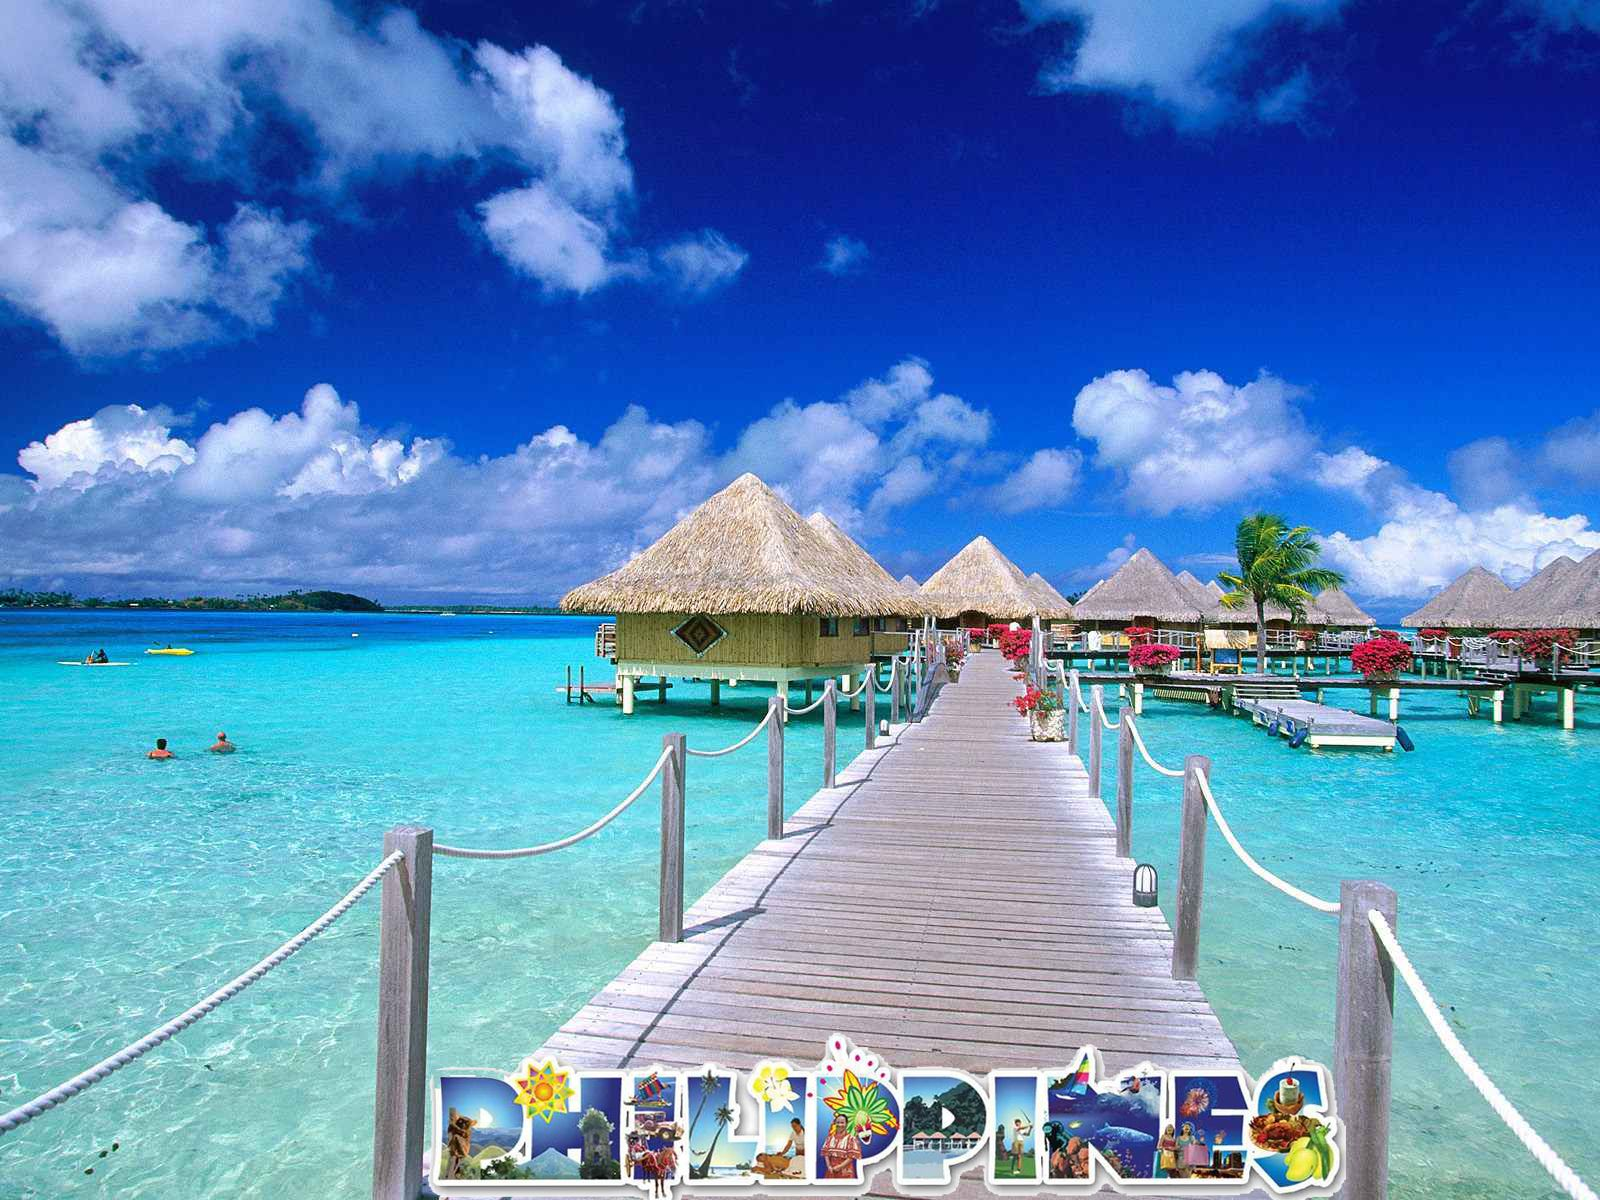 Philippines Beaches Brief History Of The Philippines The Name Of The Philippines Place That